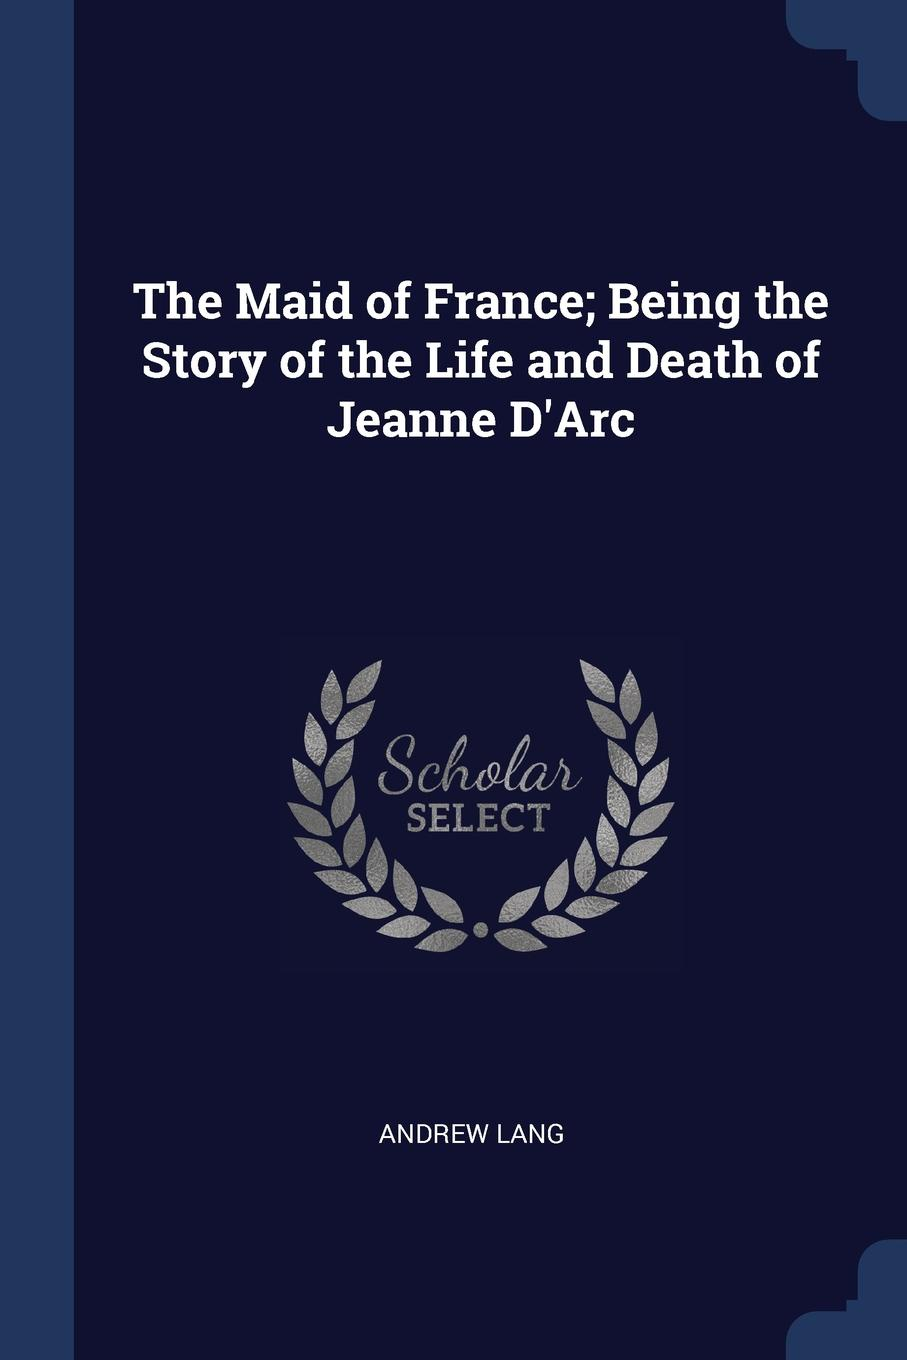 The Maid of France; Being the Story of the Life and Death of Jeanne D.Arc. Andrew Lang